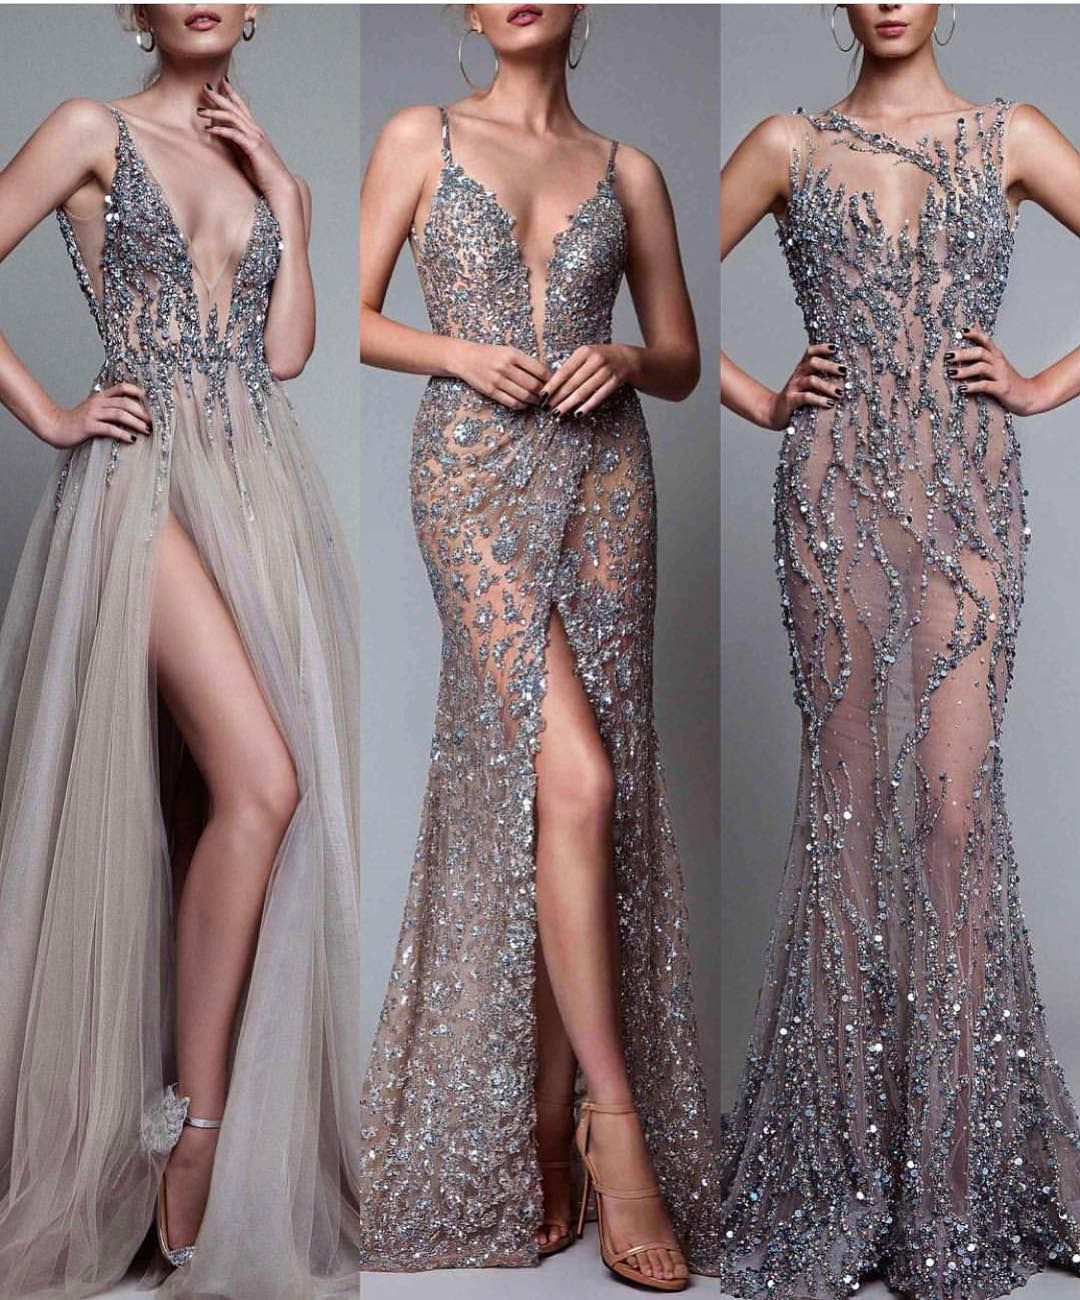 1,2 Or 3 ? Who's Your Favorite Evening Dress? Let Us Know